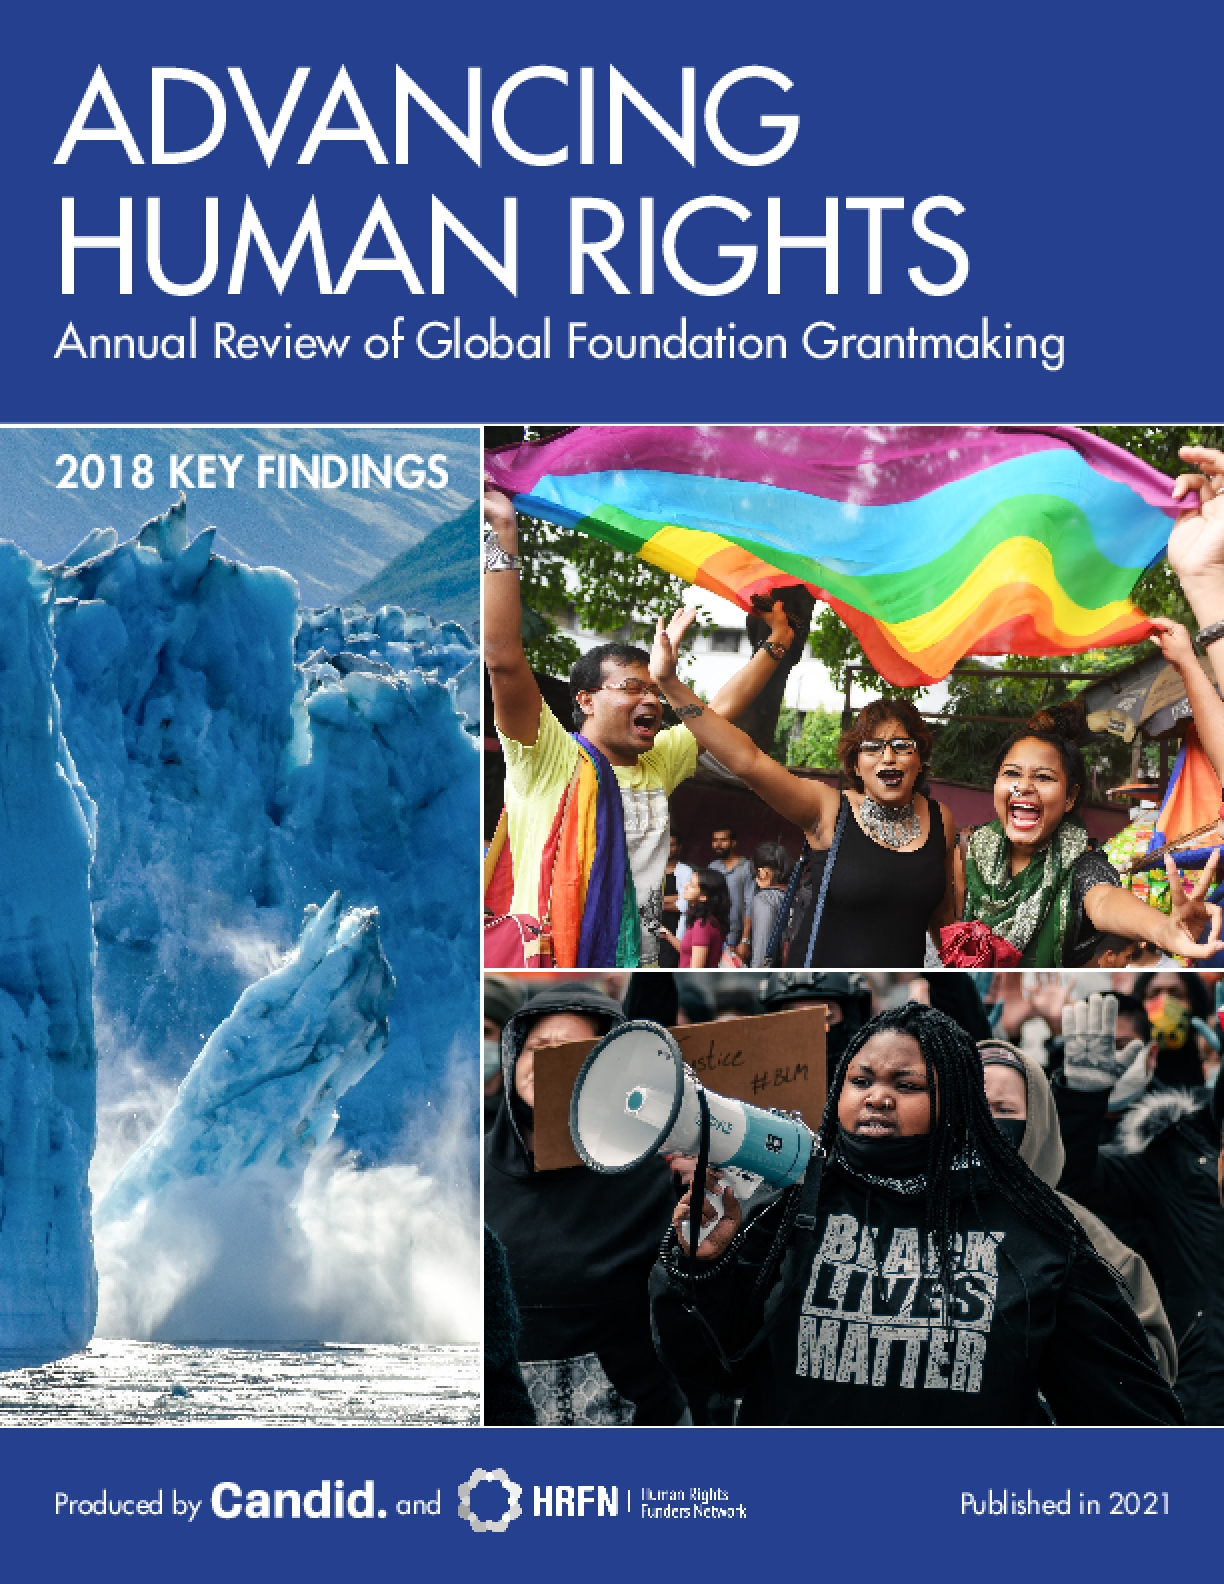 Advancing Human Rights: Annual Review of Global Foundation Grantmaking, 2018 Key Findings